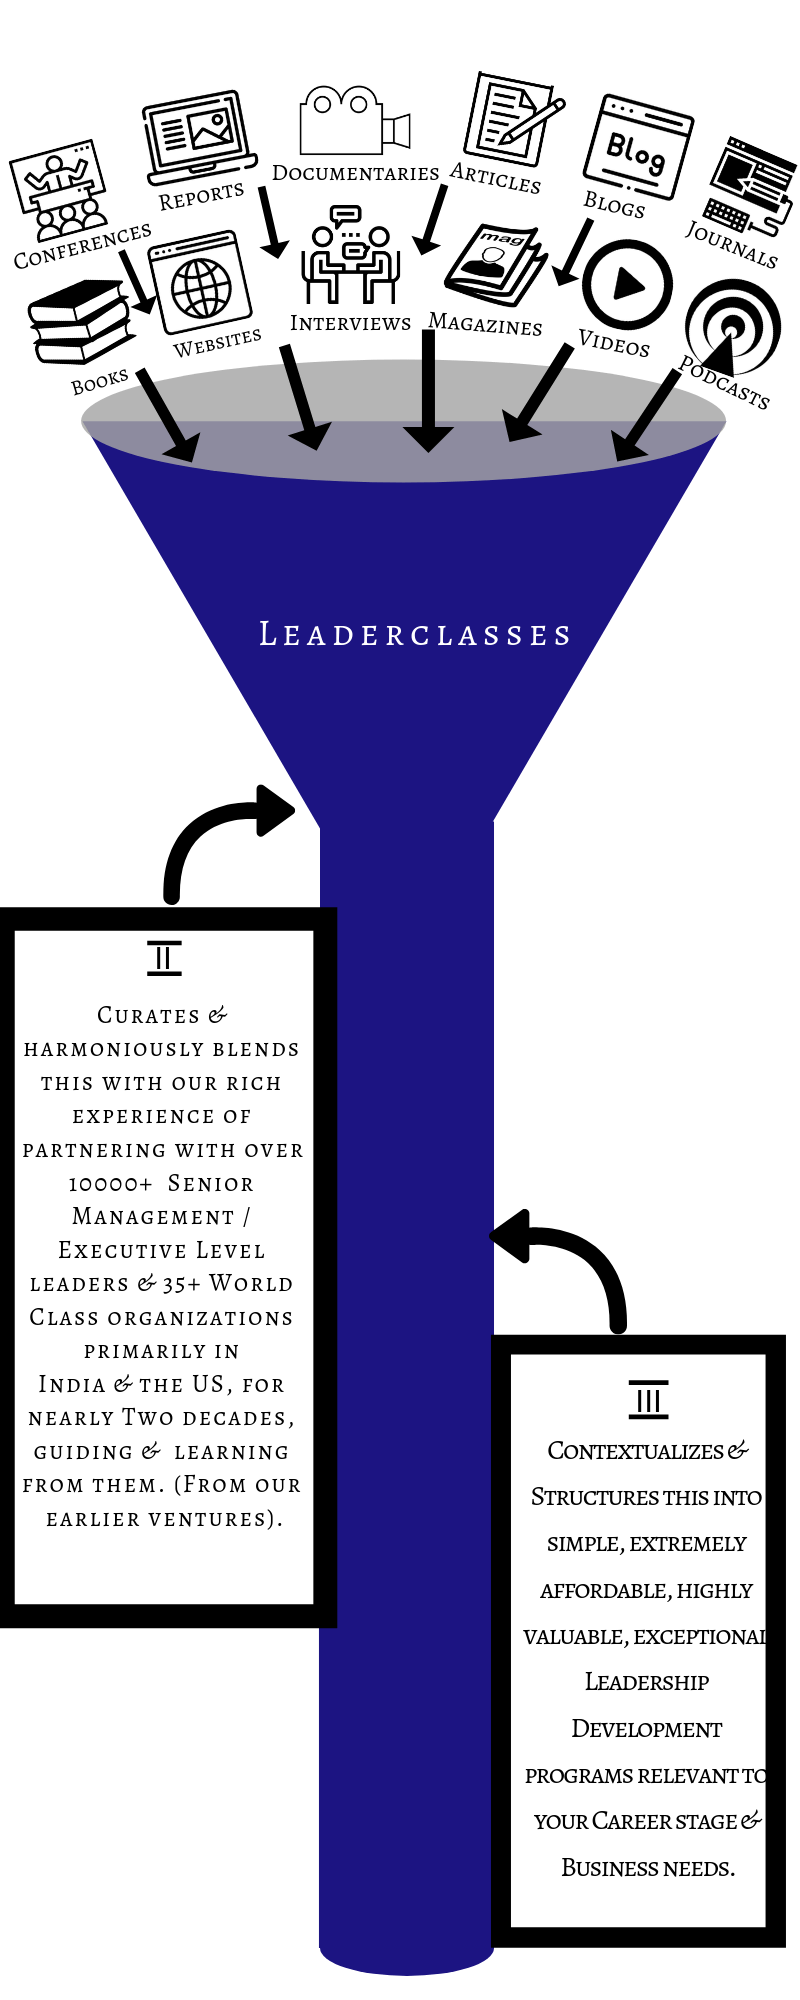 Image of sources of exceptionally valuable content like Books, Websites, Documentaries, Interviews, Magazines & Reports for LeaderClasses Career excellence and Leadership Development Programs.